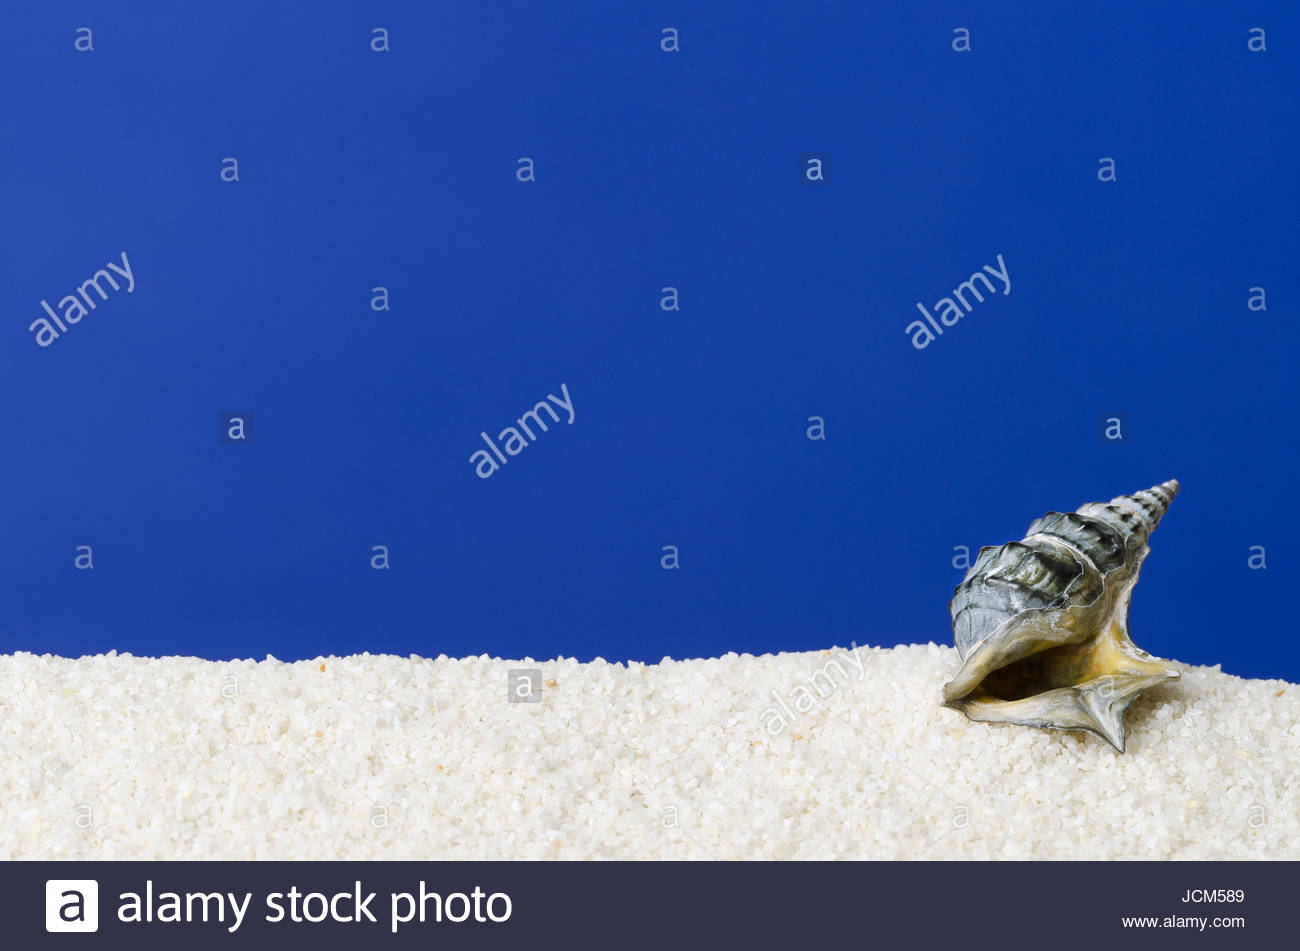 Sea snail shell on white sand with ultramarine background Small 1300x951